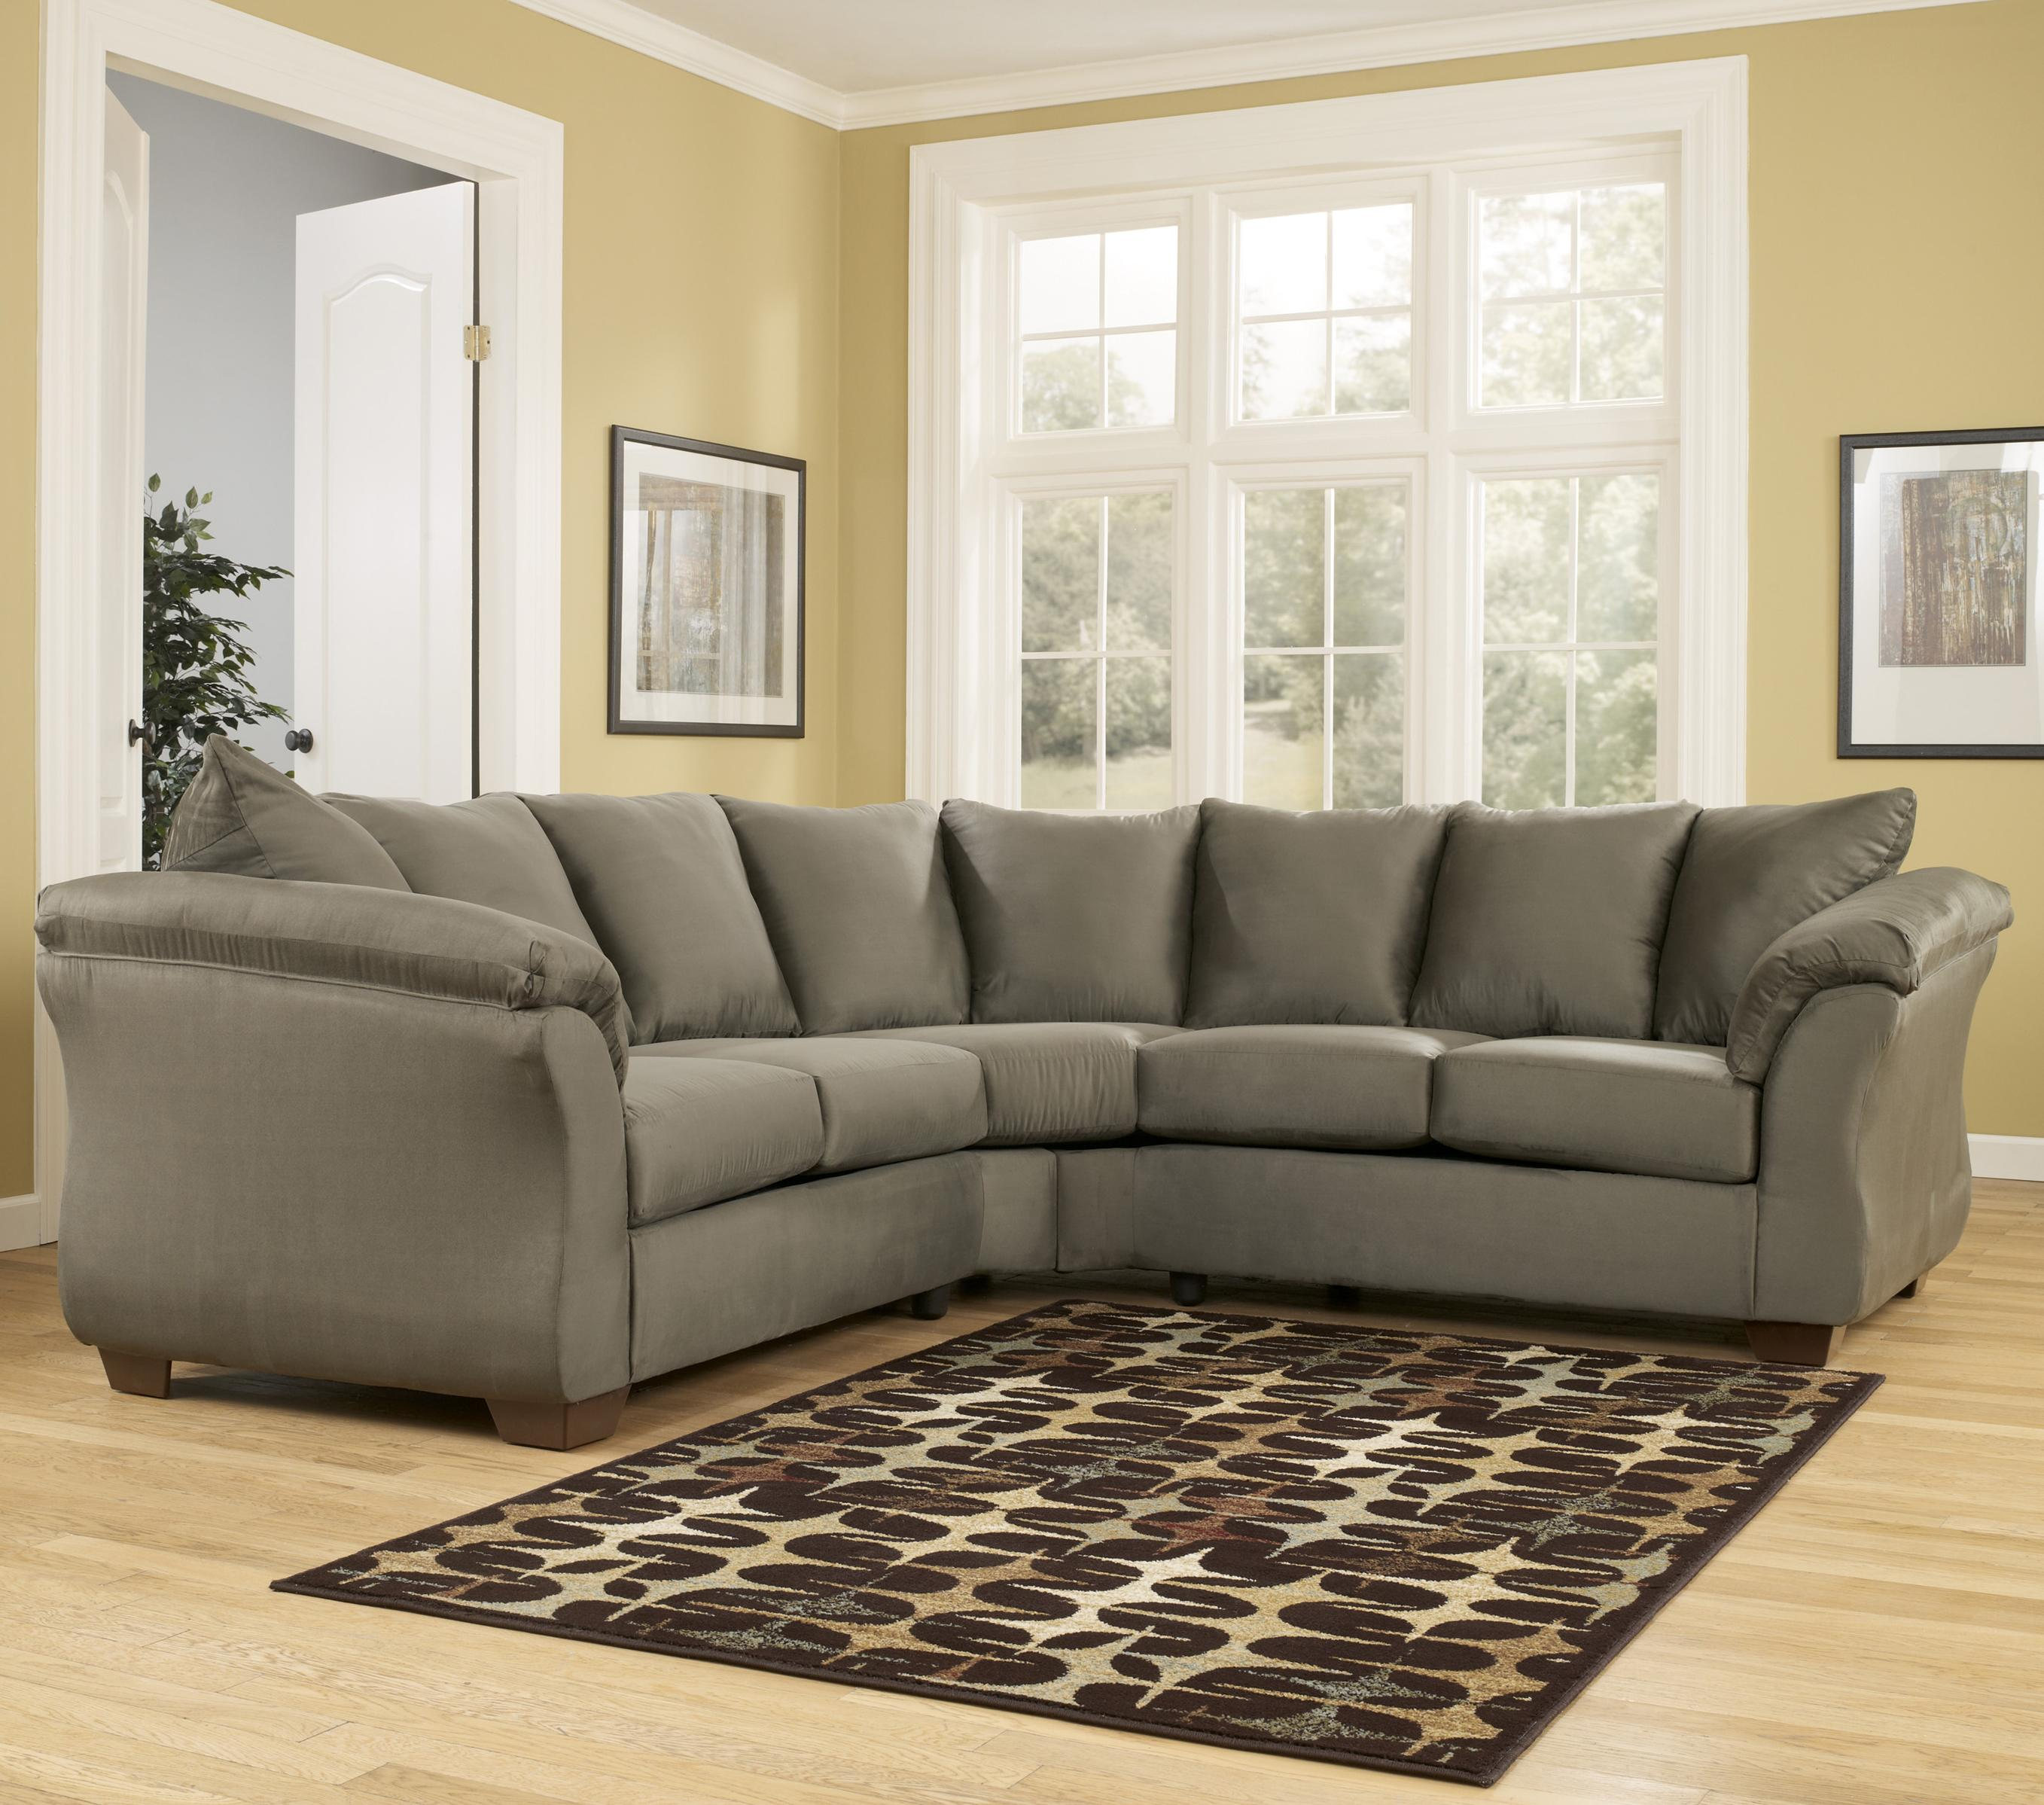 Ashley Signature Design Sofa Signature Design By Ashley Darcy - Sage Contemporary